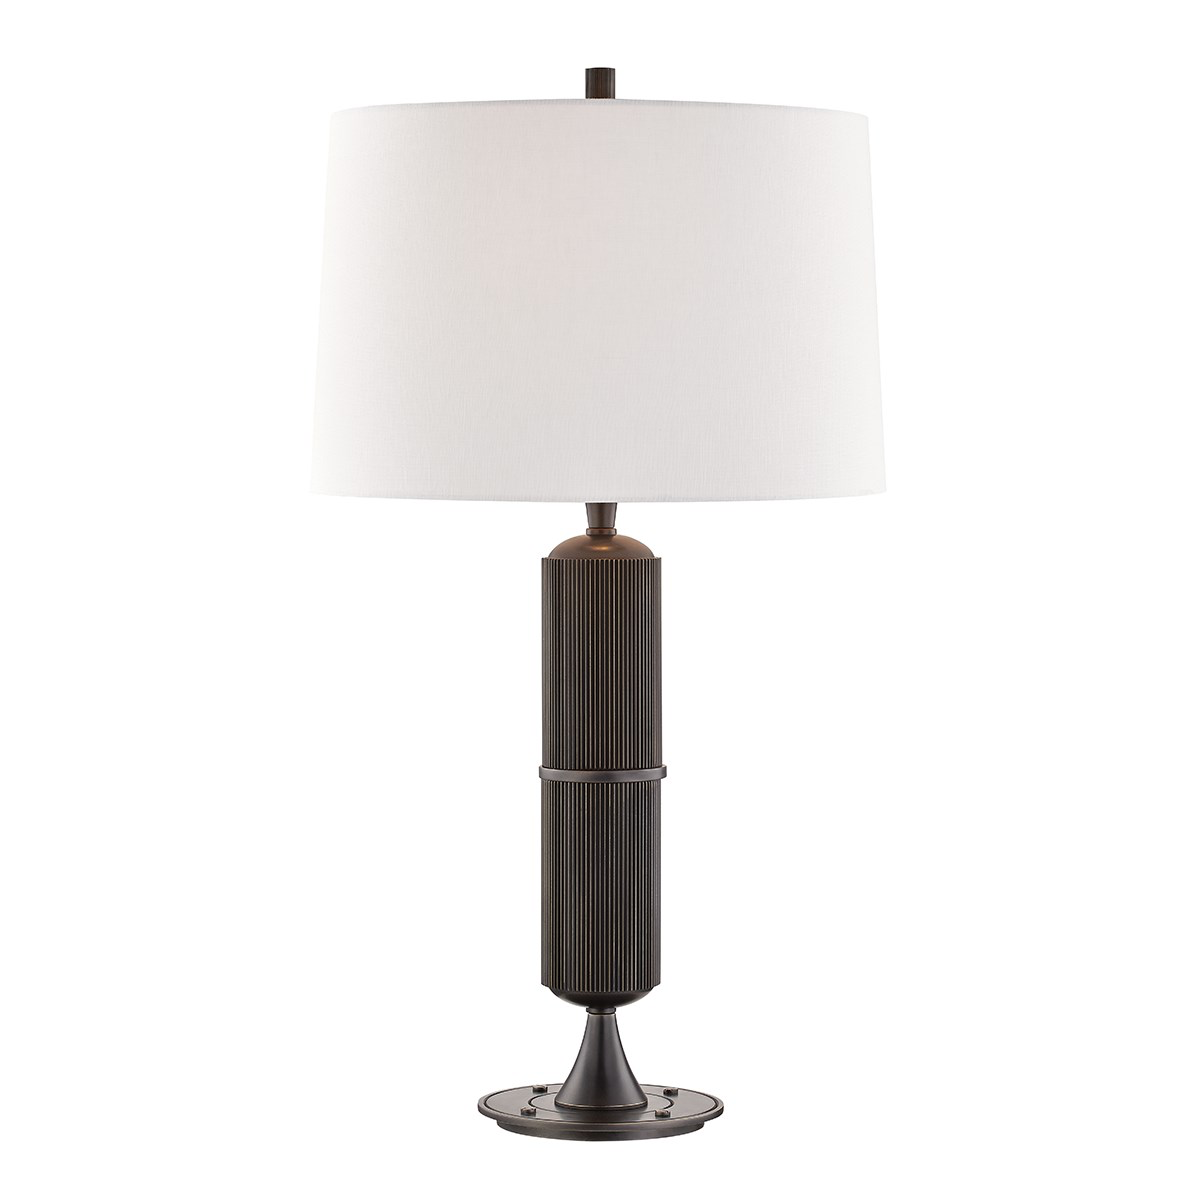 Tompkins Table Lamp